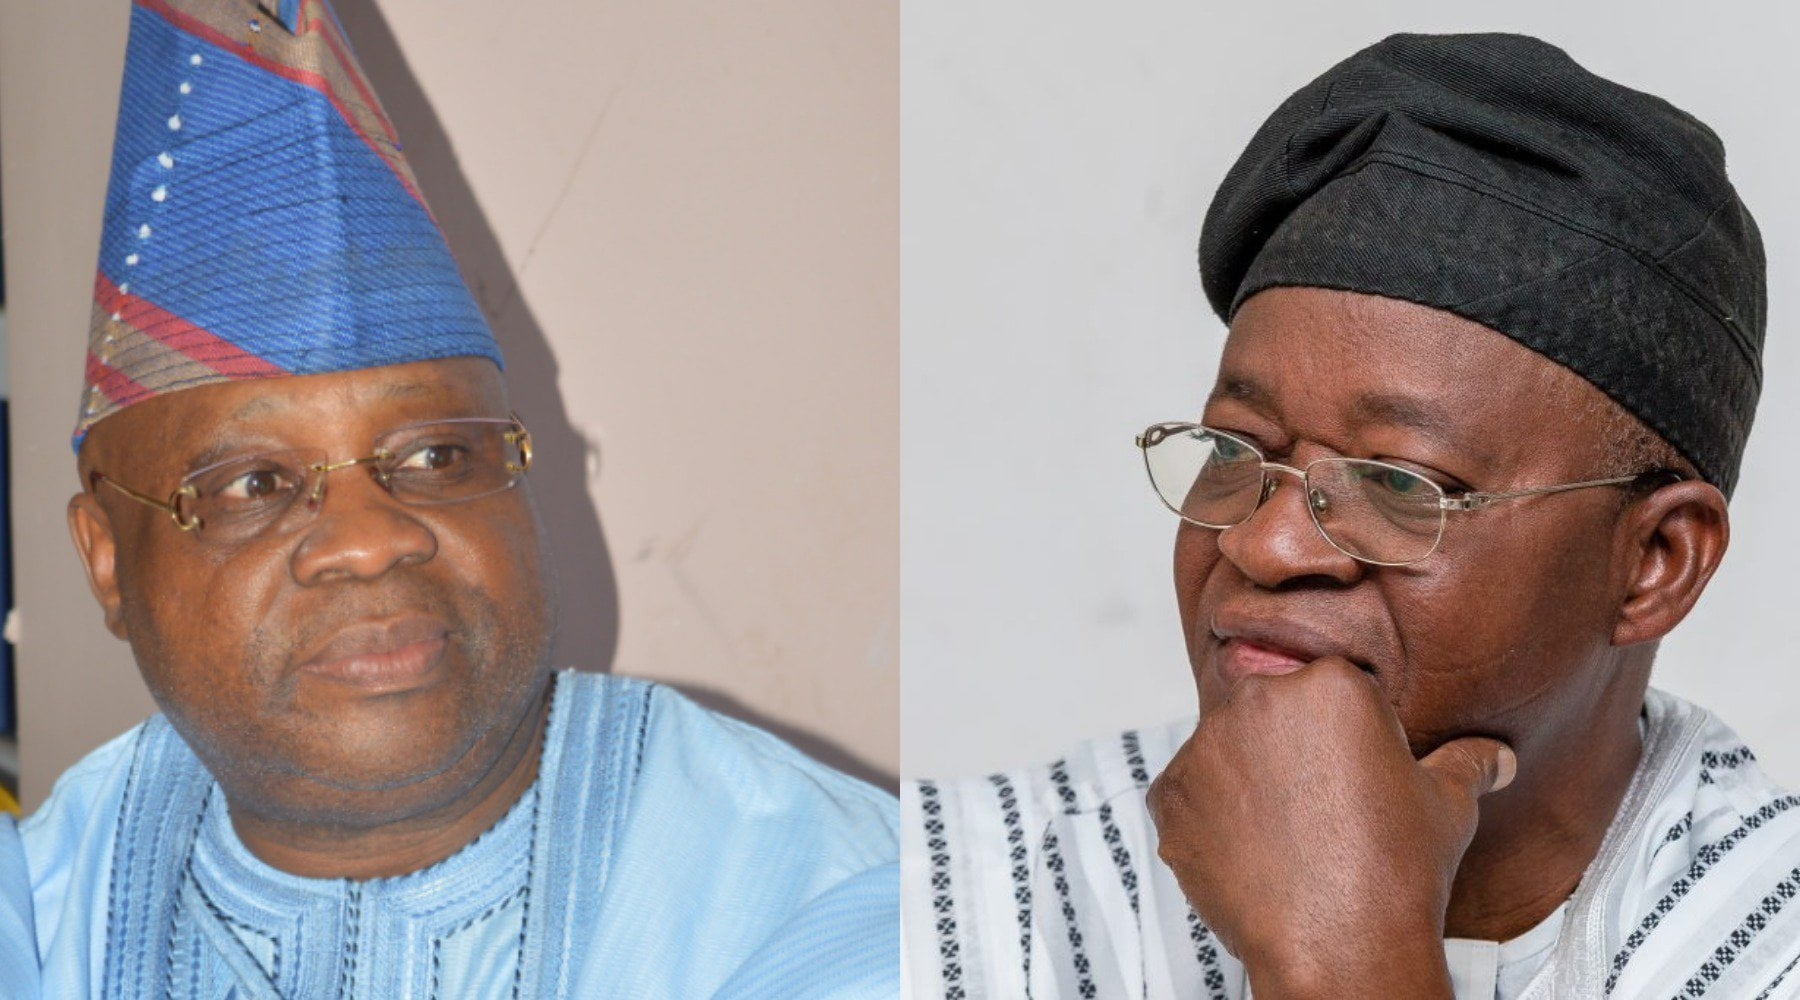 adeleke vs oyetola - Osun: APC national leadership reacts to Oyetola's victory over Adeleke